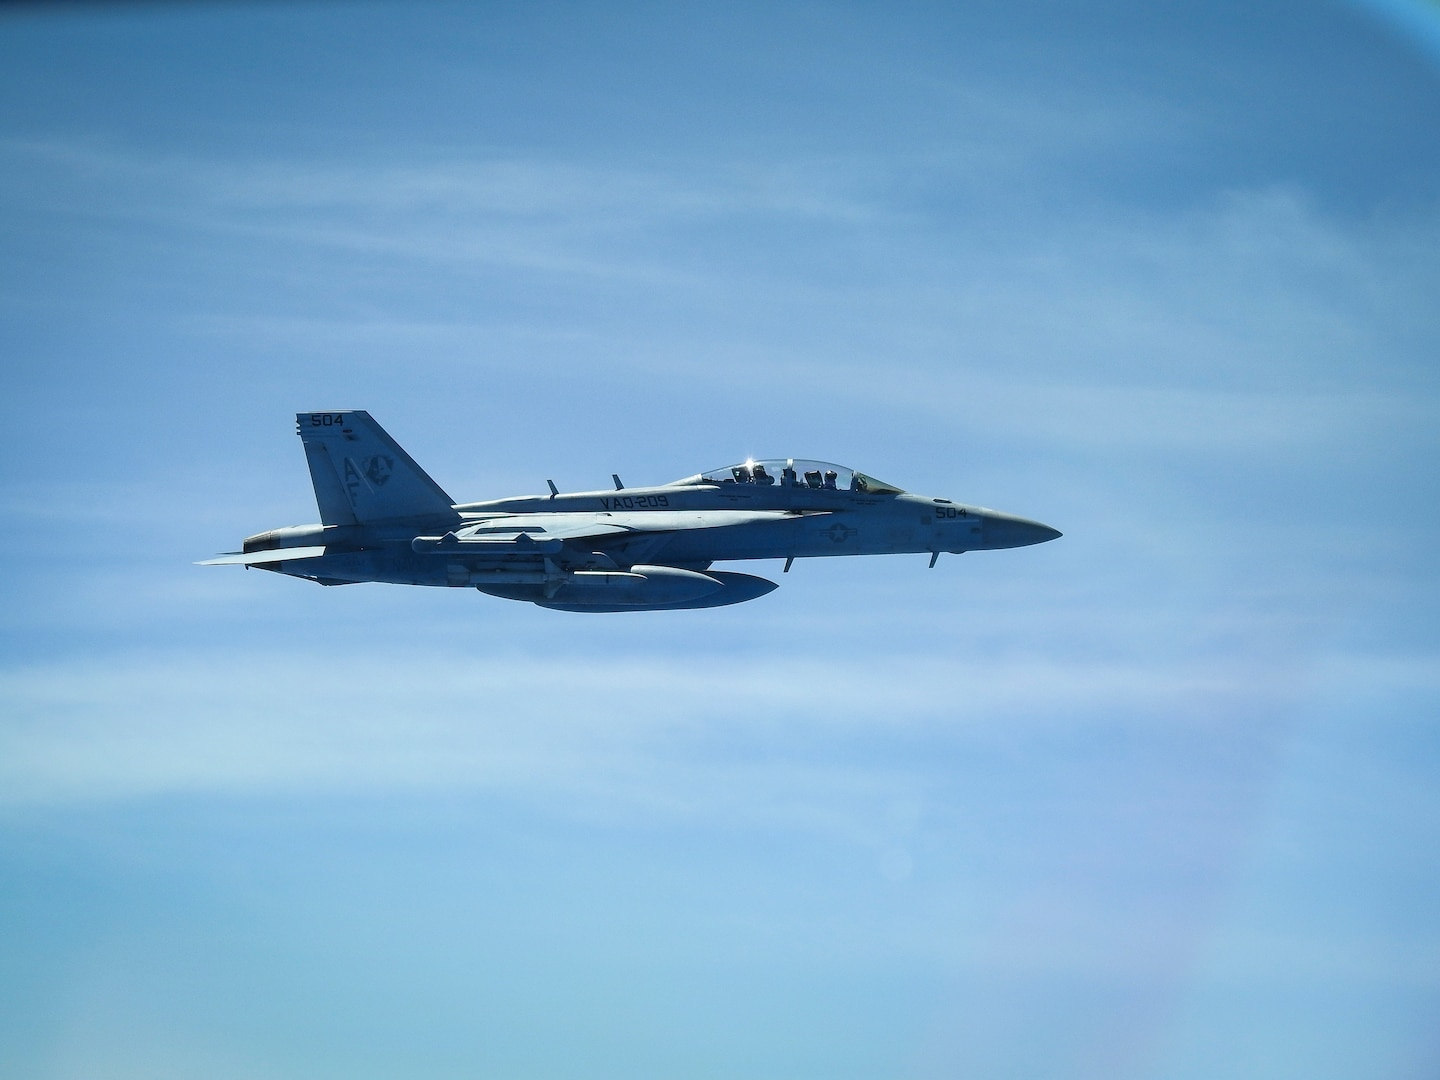 """A United States Navy E/A-18G Growler from Electronic Attack Squadron 209, the """"Star Warriors,"""" flies with a B-52H Stratofortress deployed from Barksdale Air Force Base, La., over the Sea of Japan while conducting a Bomber Task Force mission June 16, 2020. U.S. Strategic Command operations and engagements with U.S. allies and partners demonstrate and strengthen a shared commitment to global security and stability. (Courtesy photo)"""